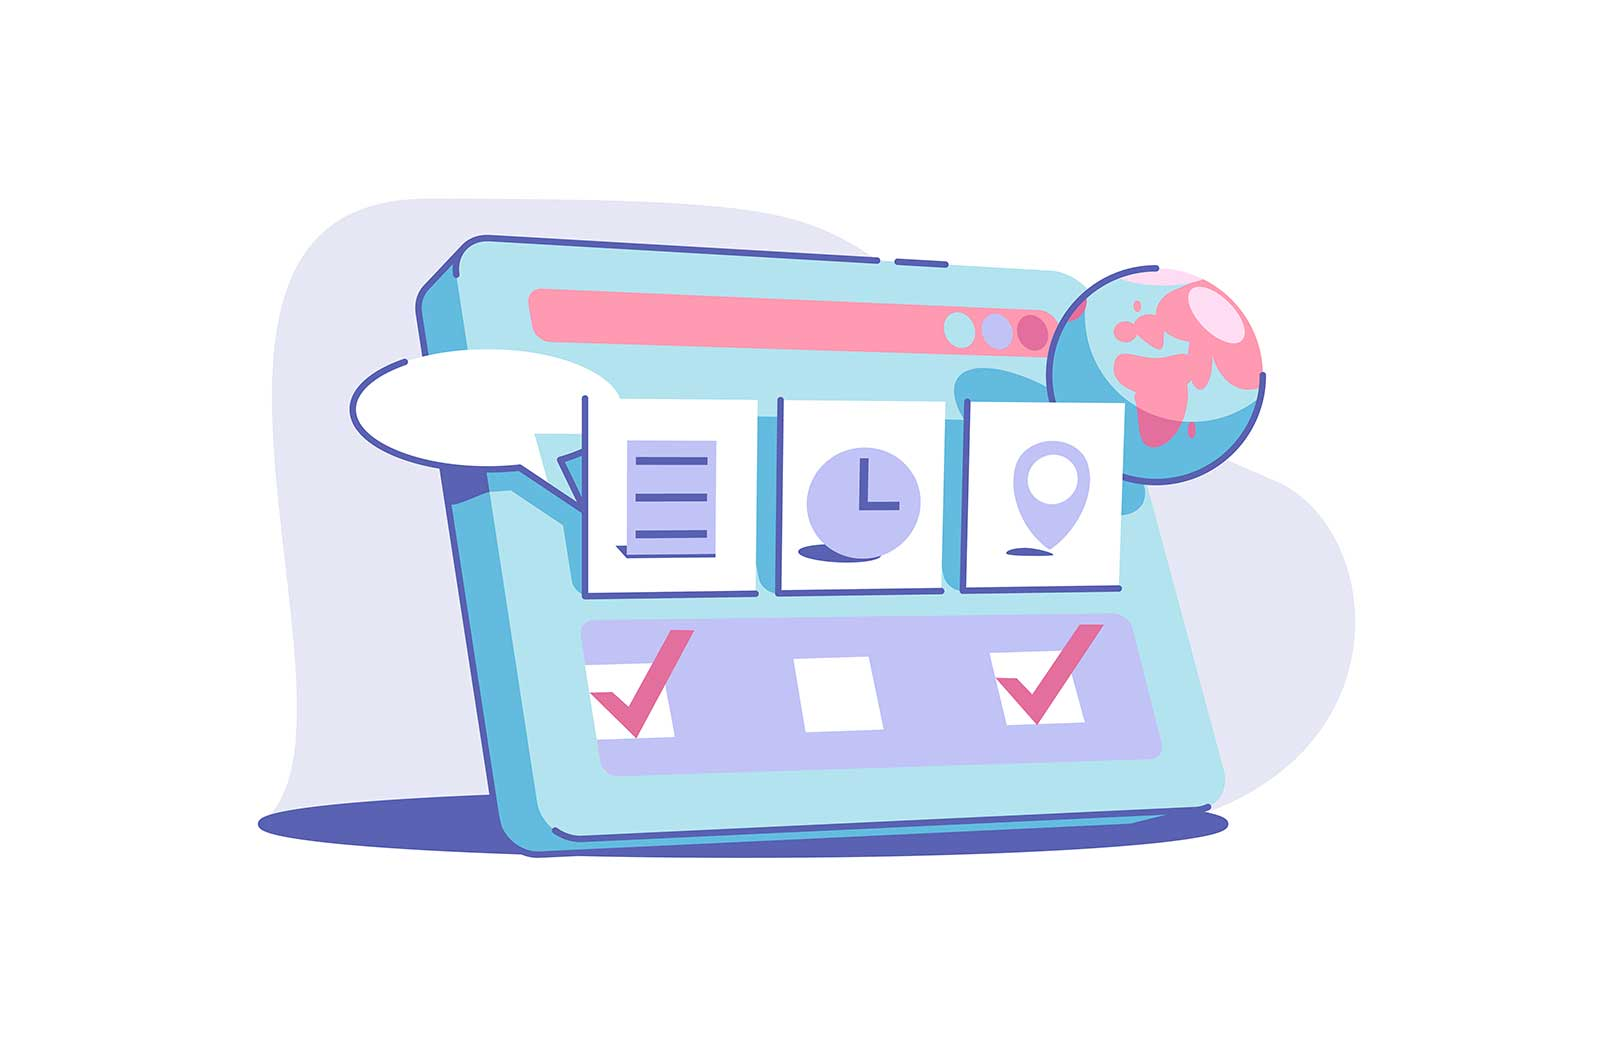 Site service usage vector illustration. Modern device with internet connection and screen tabs. Worldwide search. Technology and fun concept.